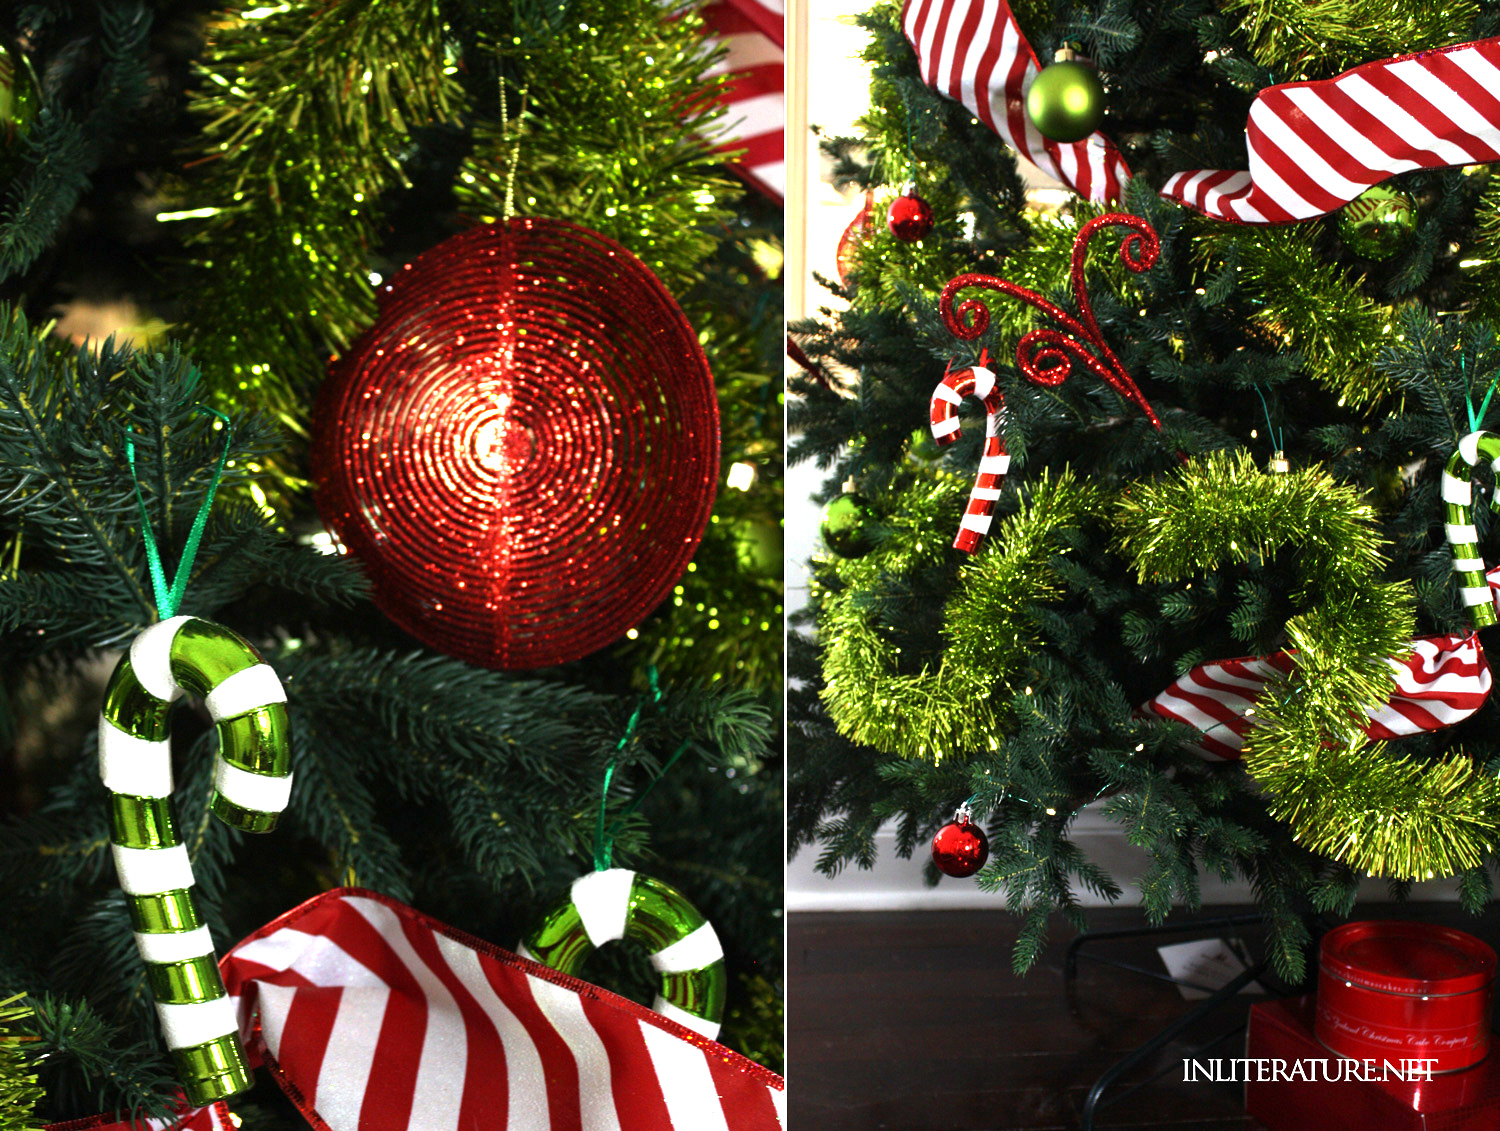 Decorating your Christmas tree Who-ville style-- keep it simple by choosing a colour scheme and keeping the variety of ornaments to a minimum.